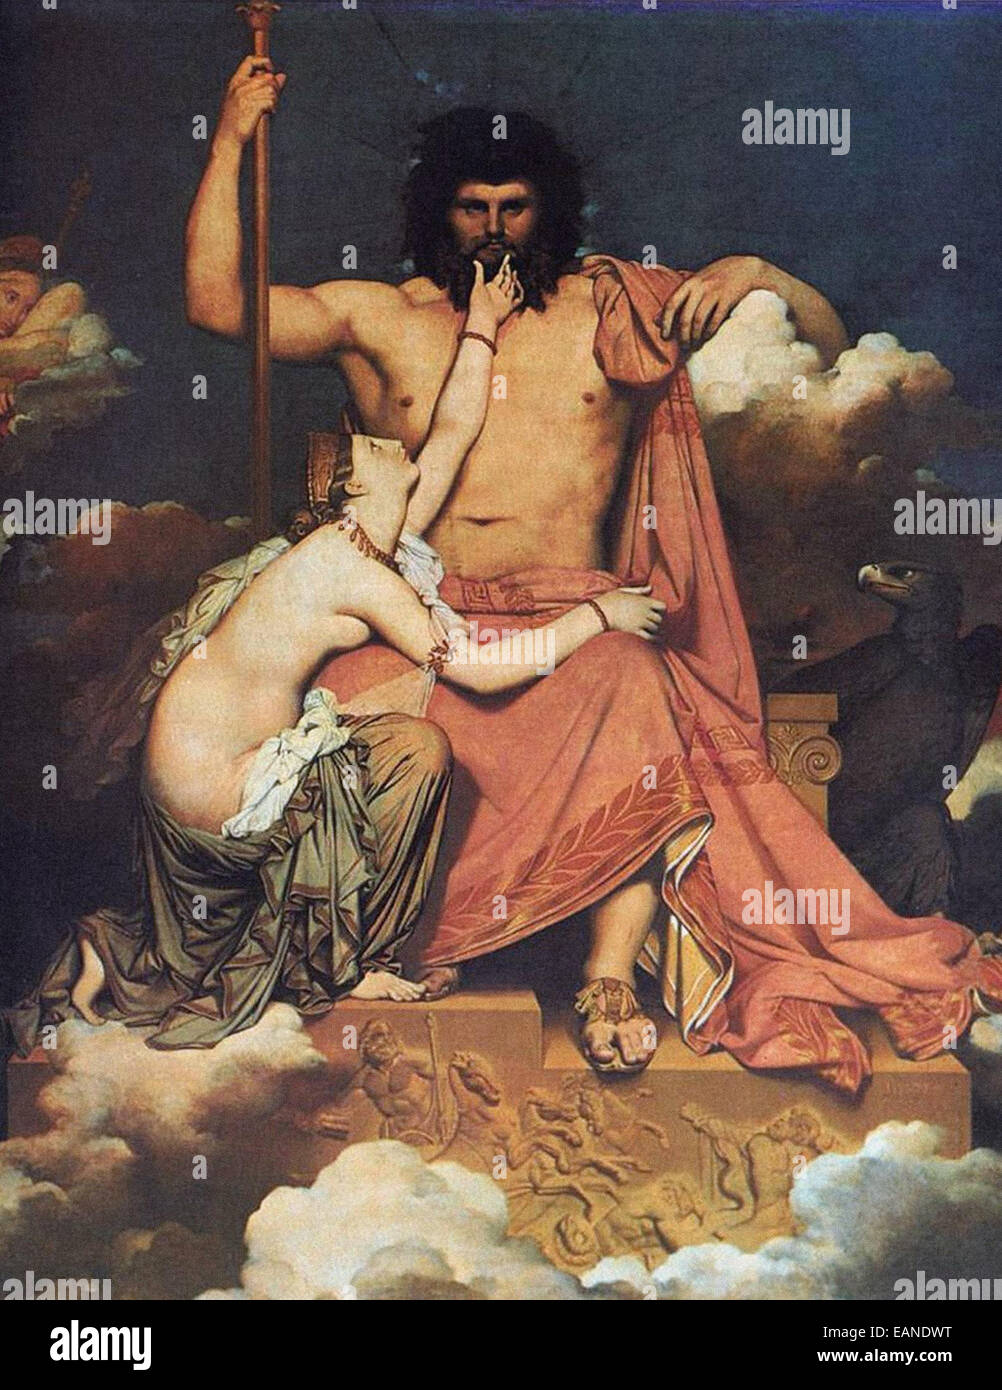 Jean-Auguste-Dominique Ingres  Jupiter and Thetis - Stock Image